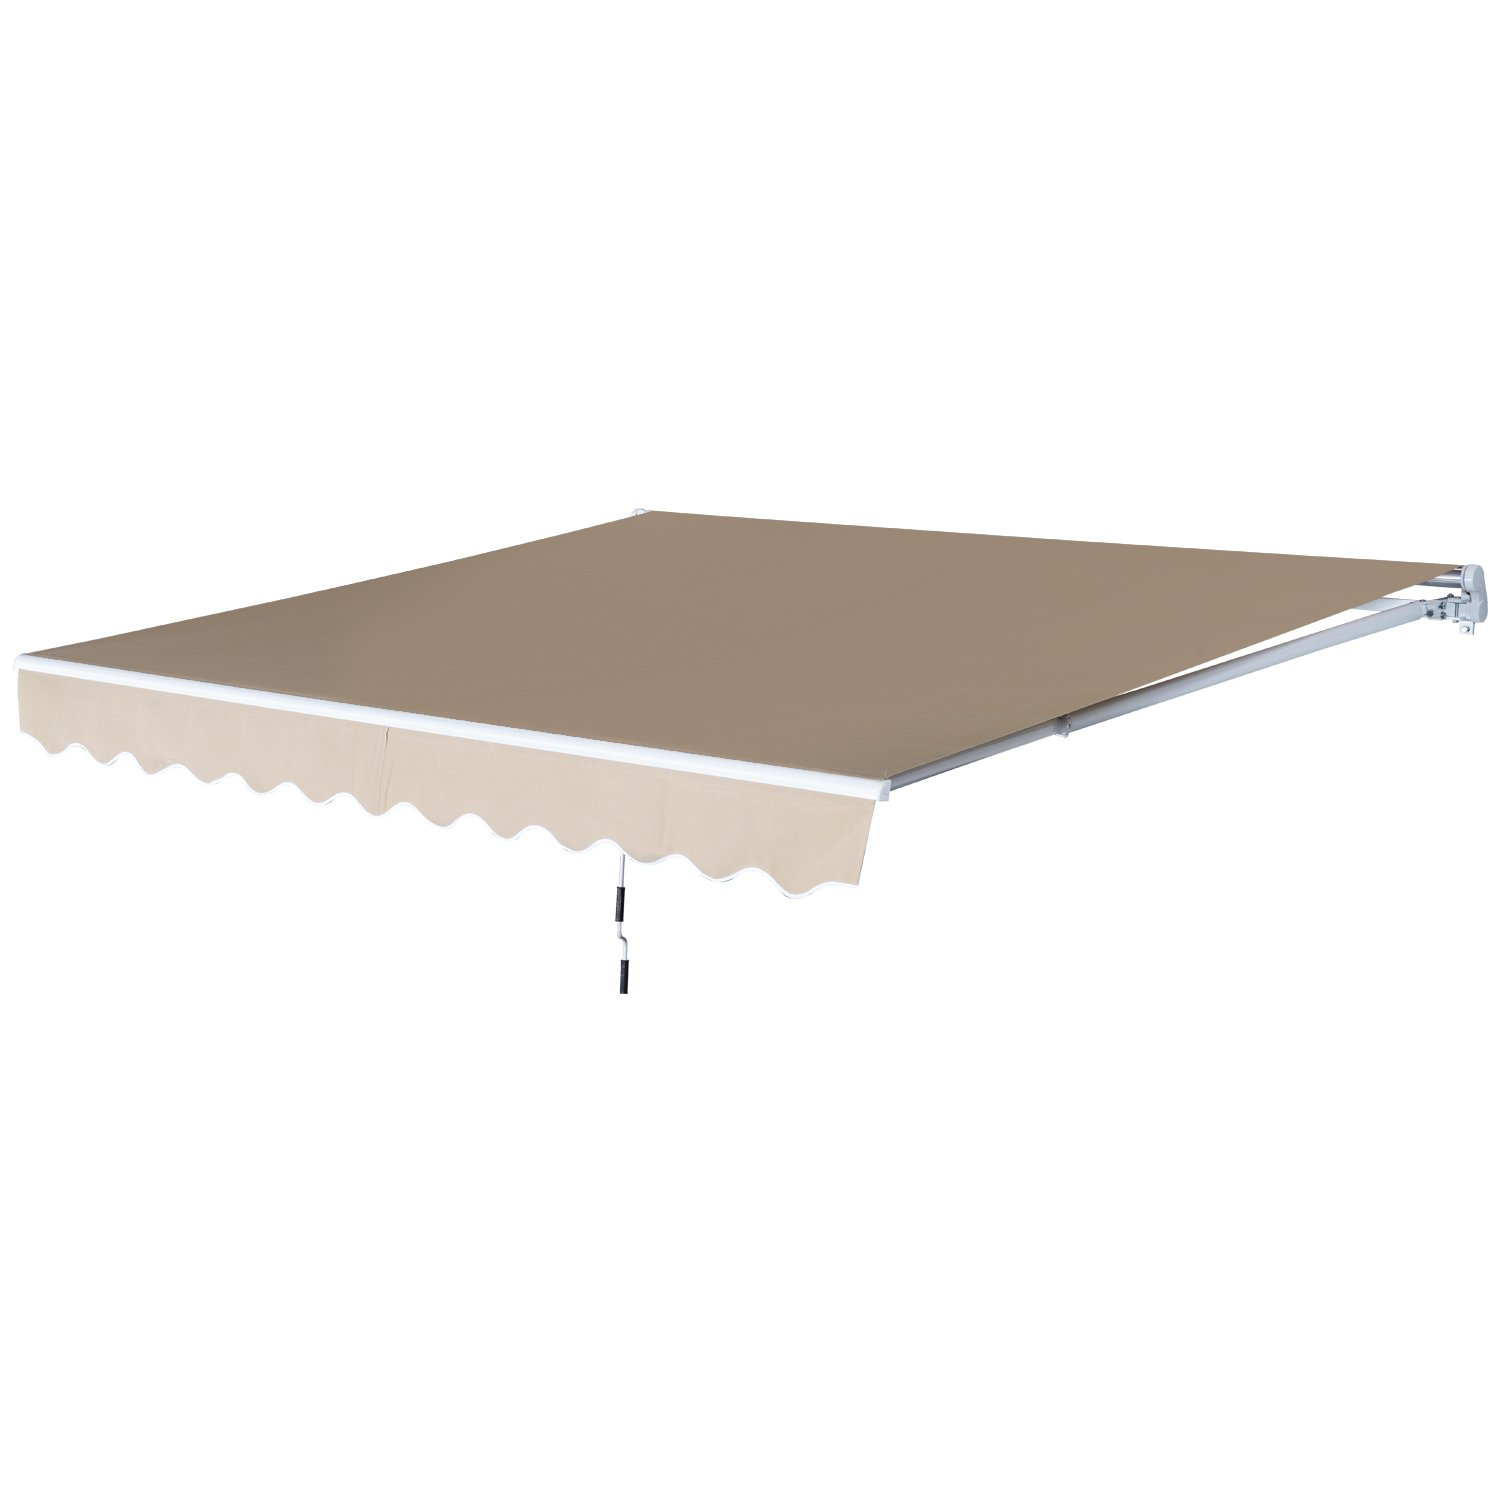 Outsunny 12' x 8.2' Outdoor Patio Manual Retractable Exterior Window Awning - Tan